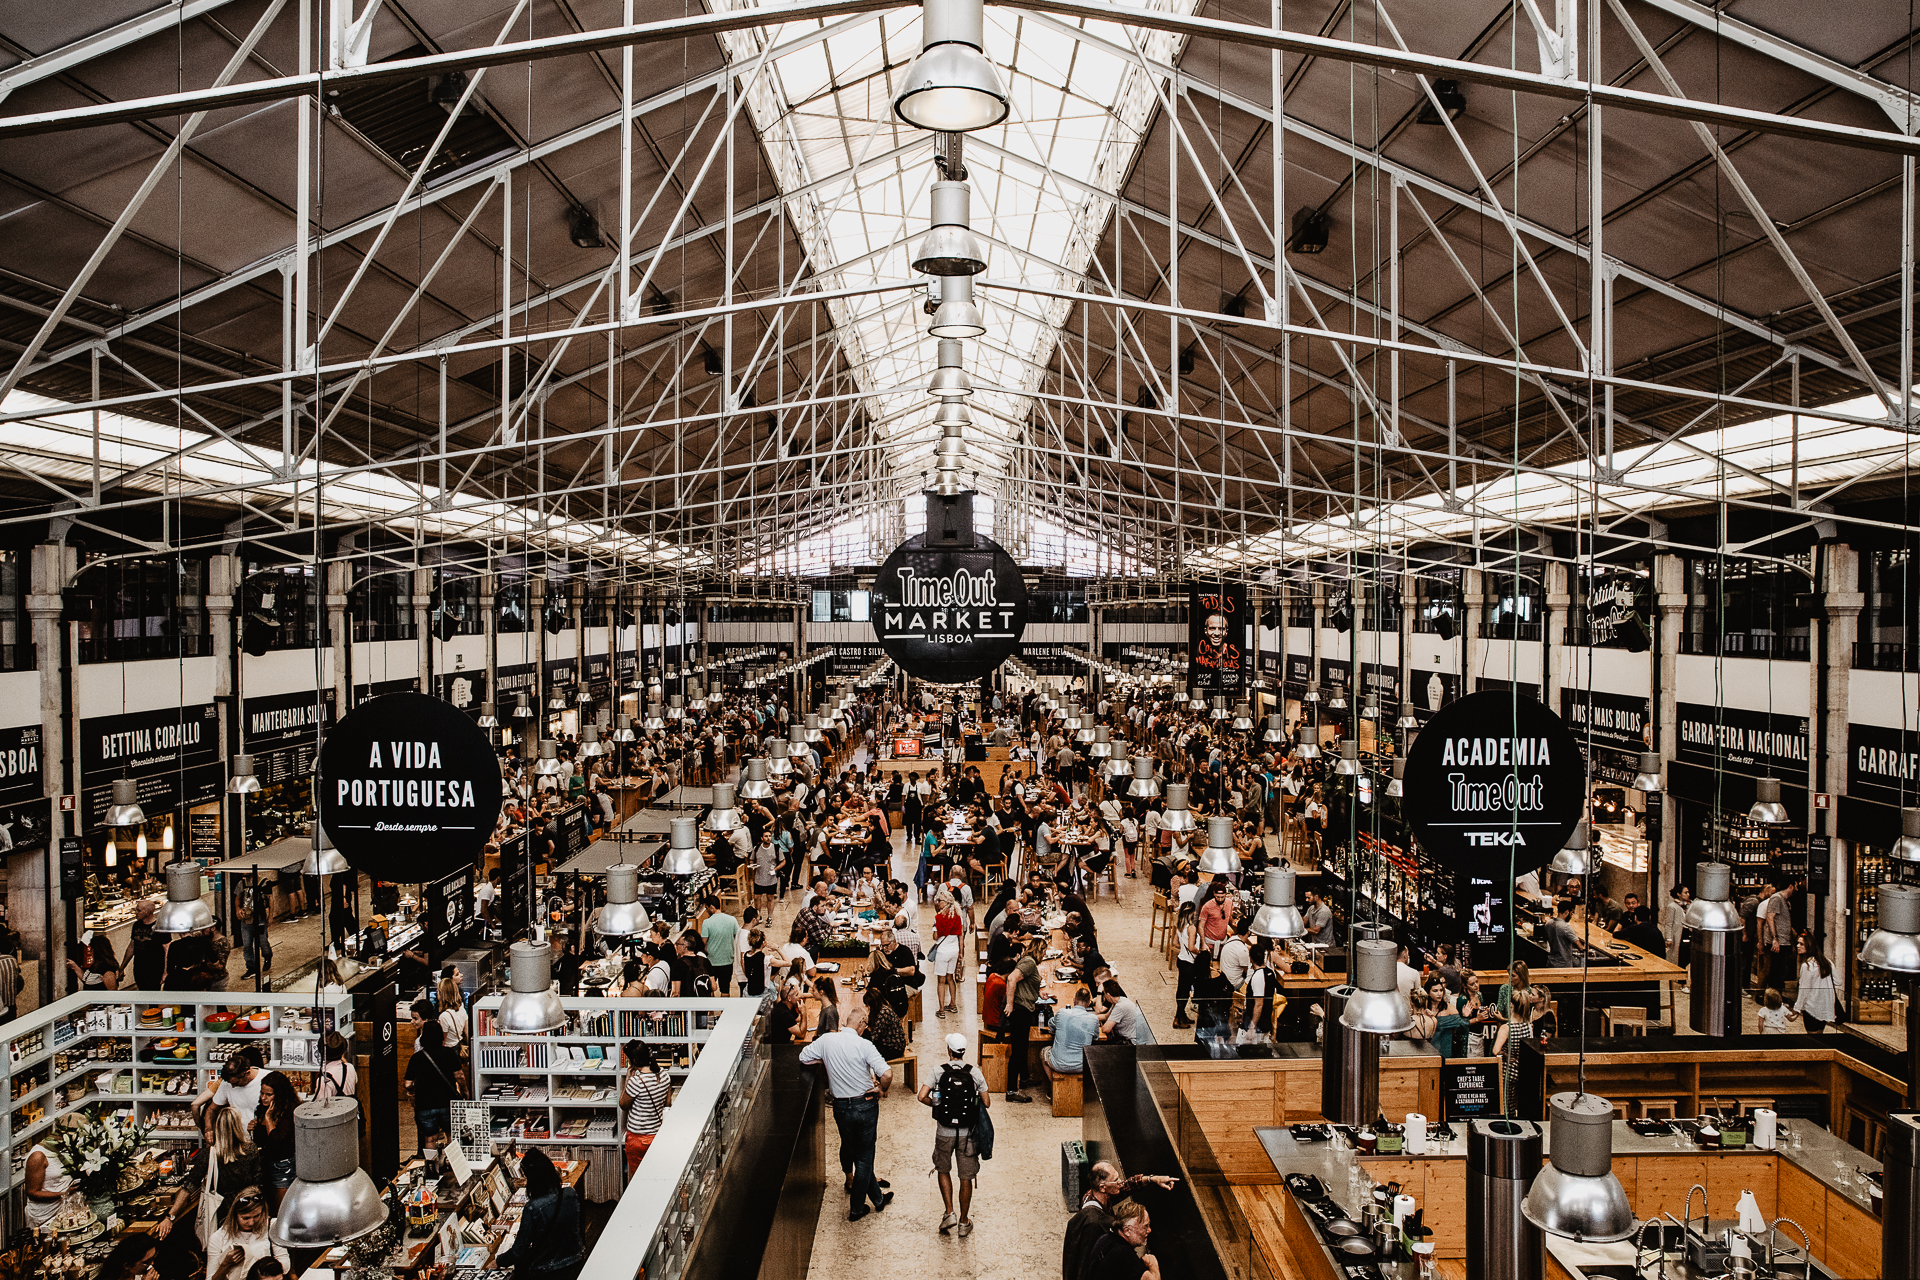 mercado da ribeira time out market foodie Sehenswürdigkeiten Highlights Lissabon